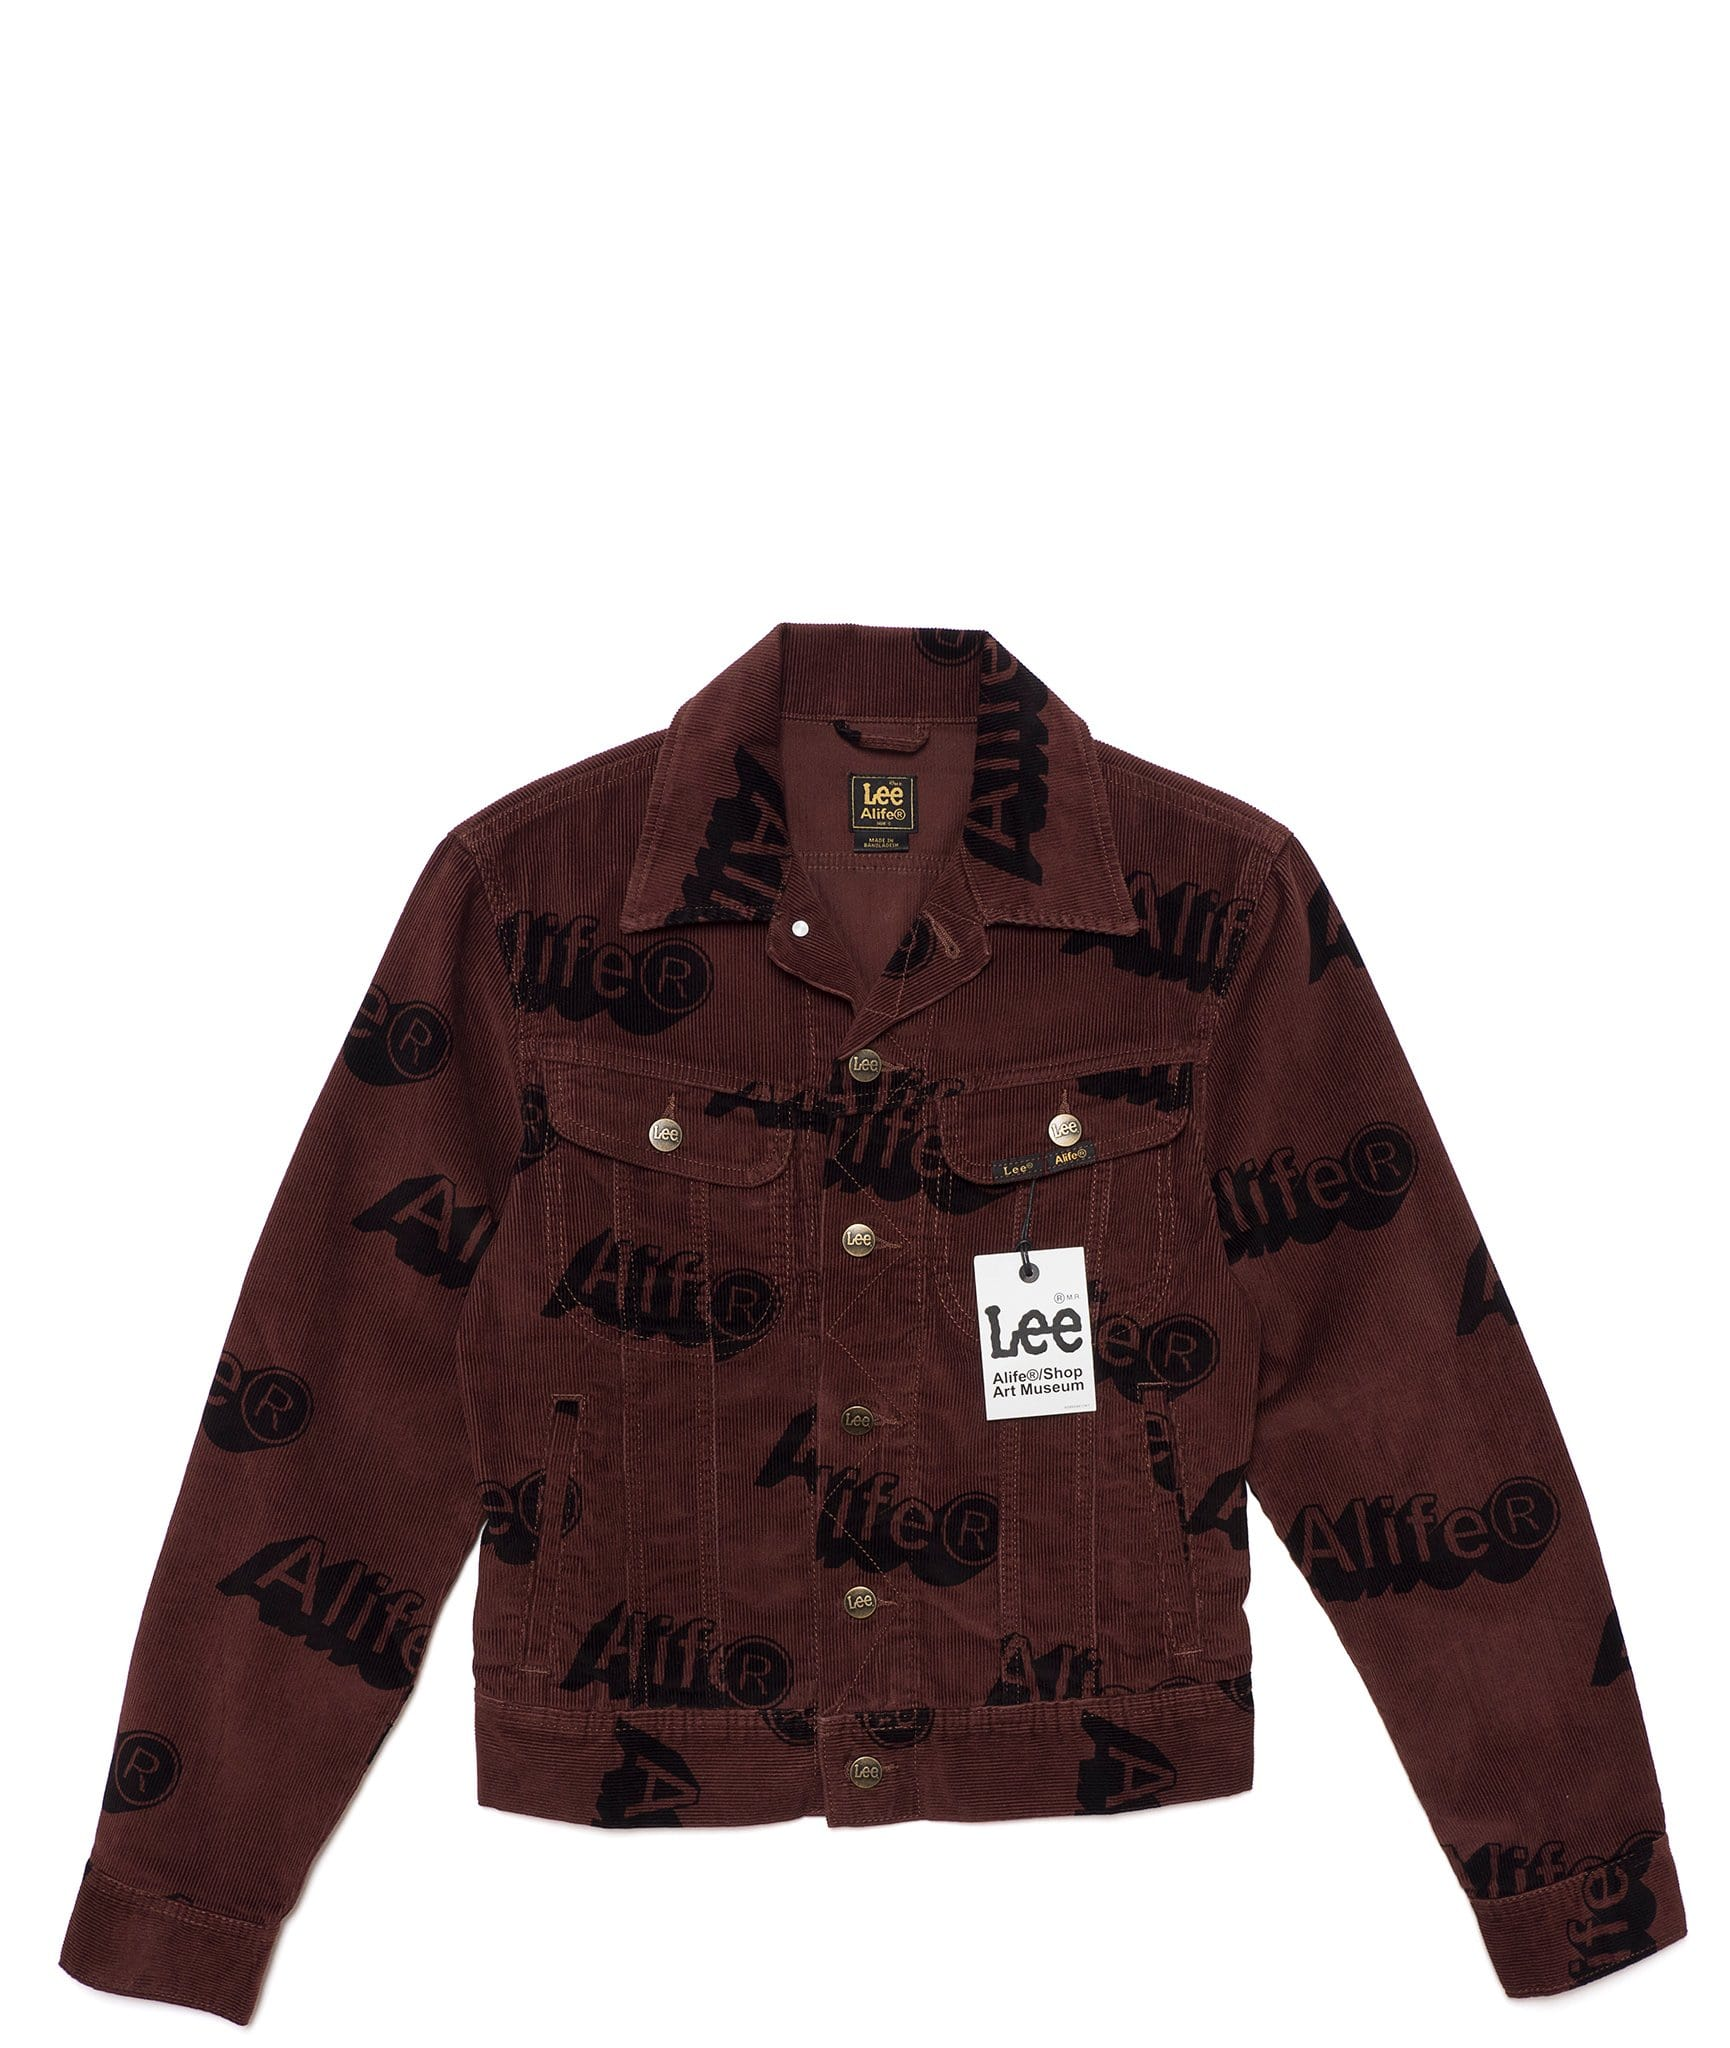 Alife/Lee Corduroy Jacket